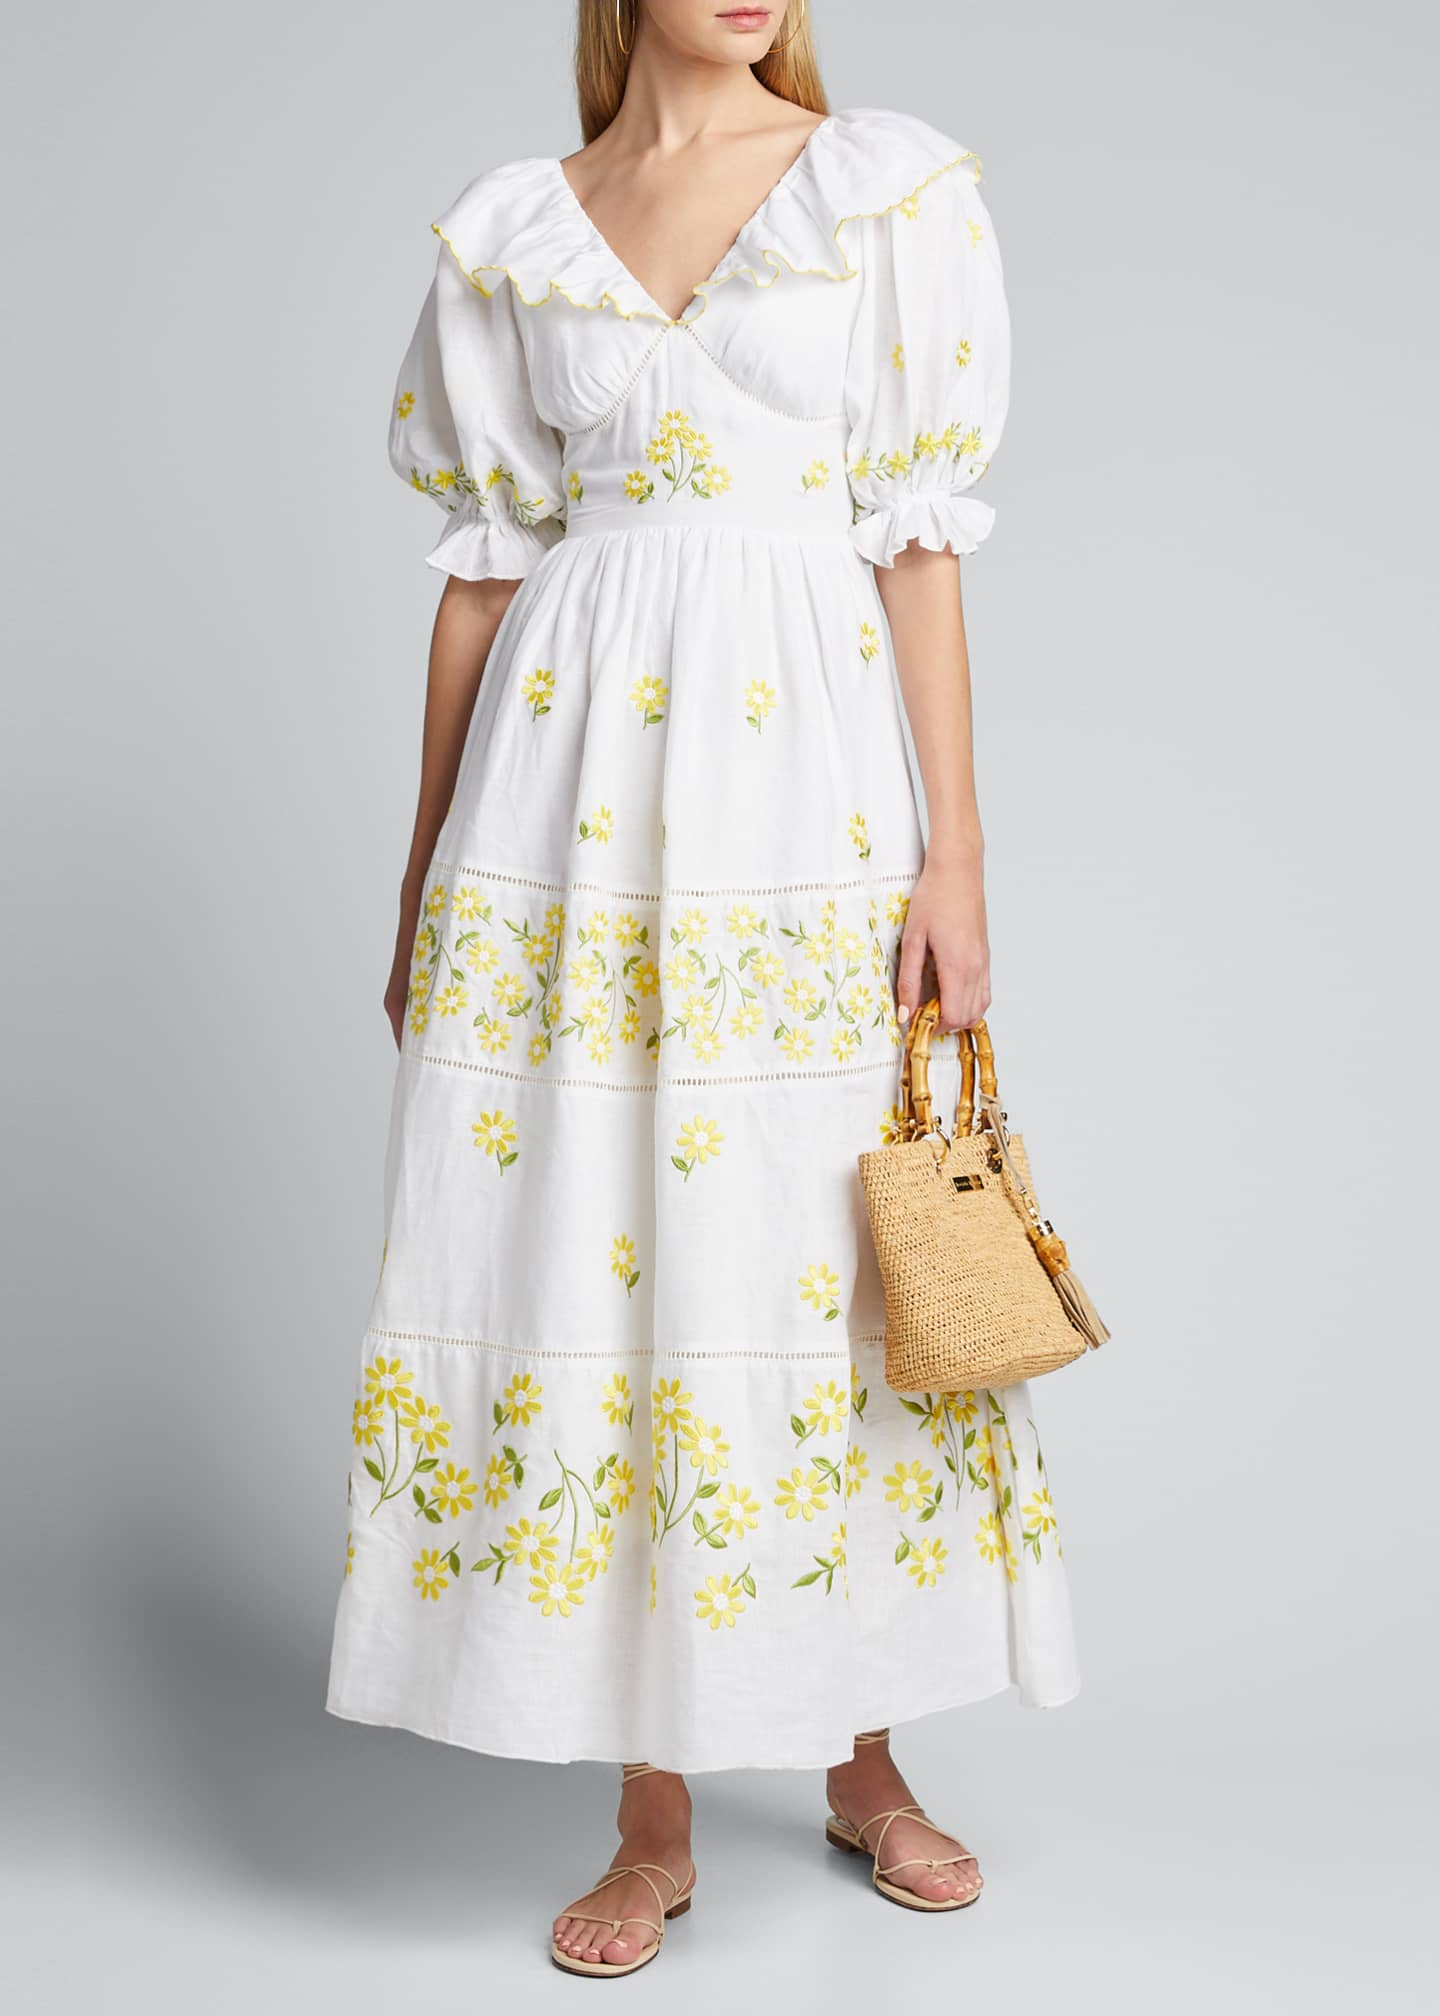 Gul Hurgel Floral-Print Puff-Sleeve Dress with Strappy Open-Back